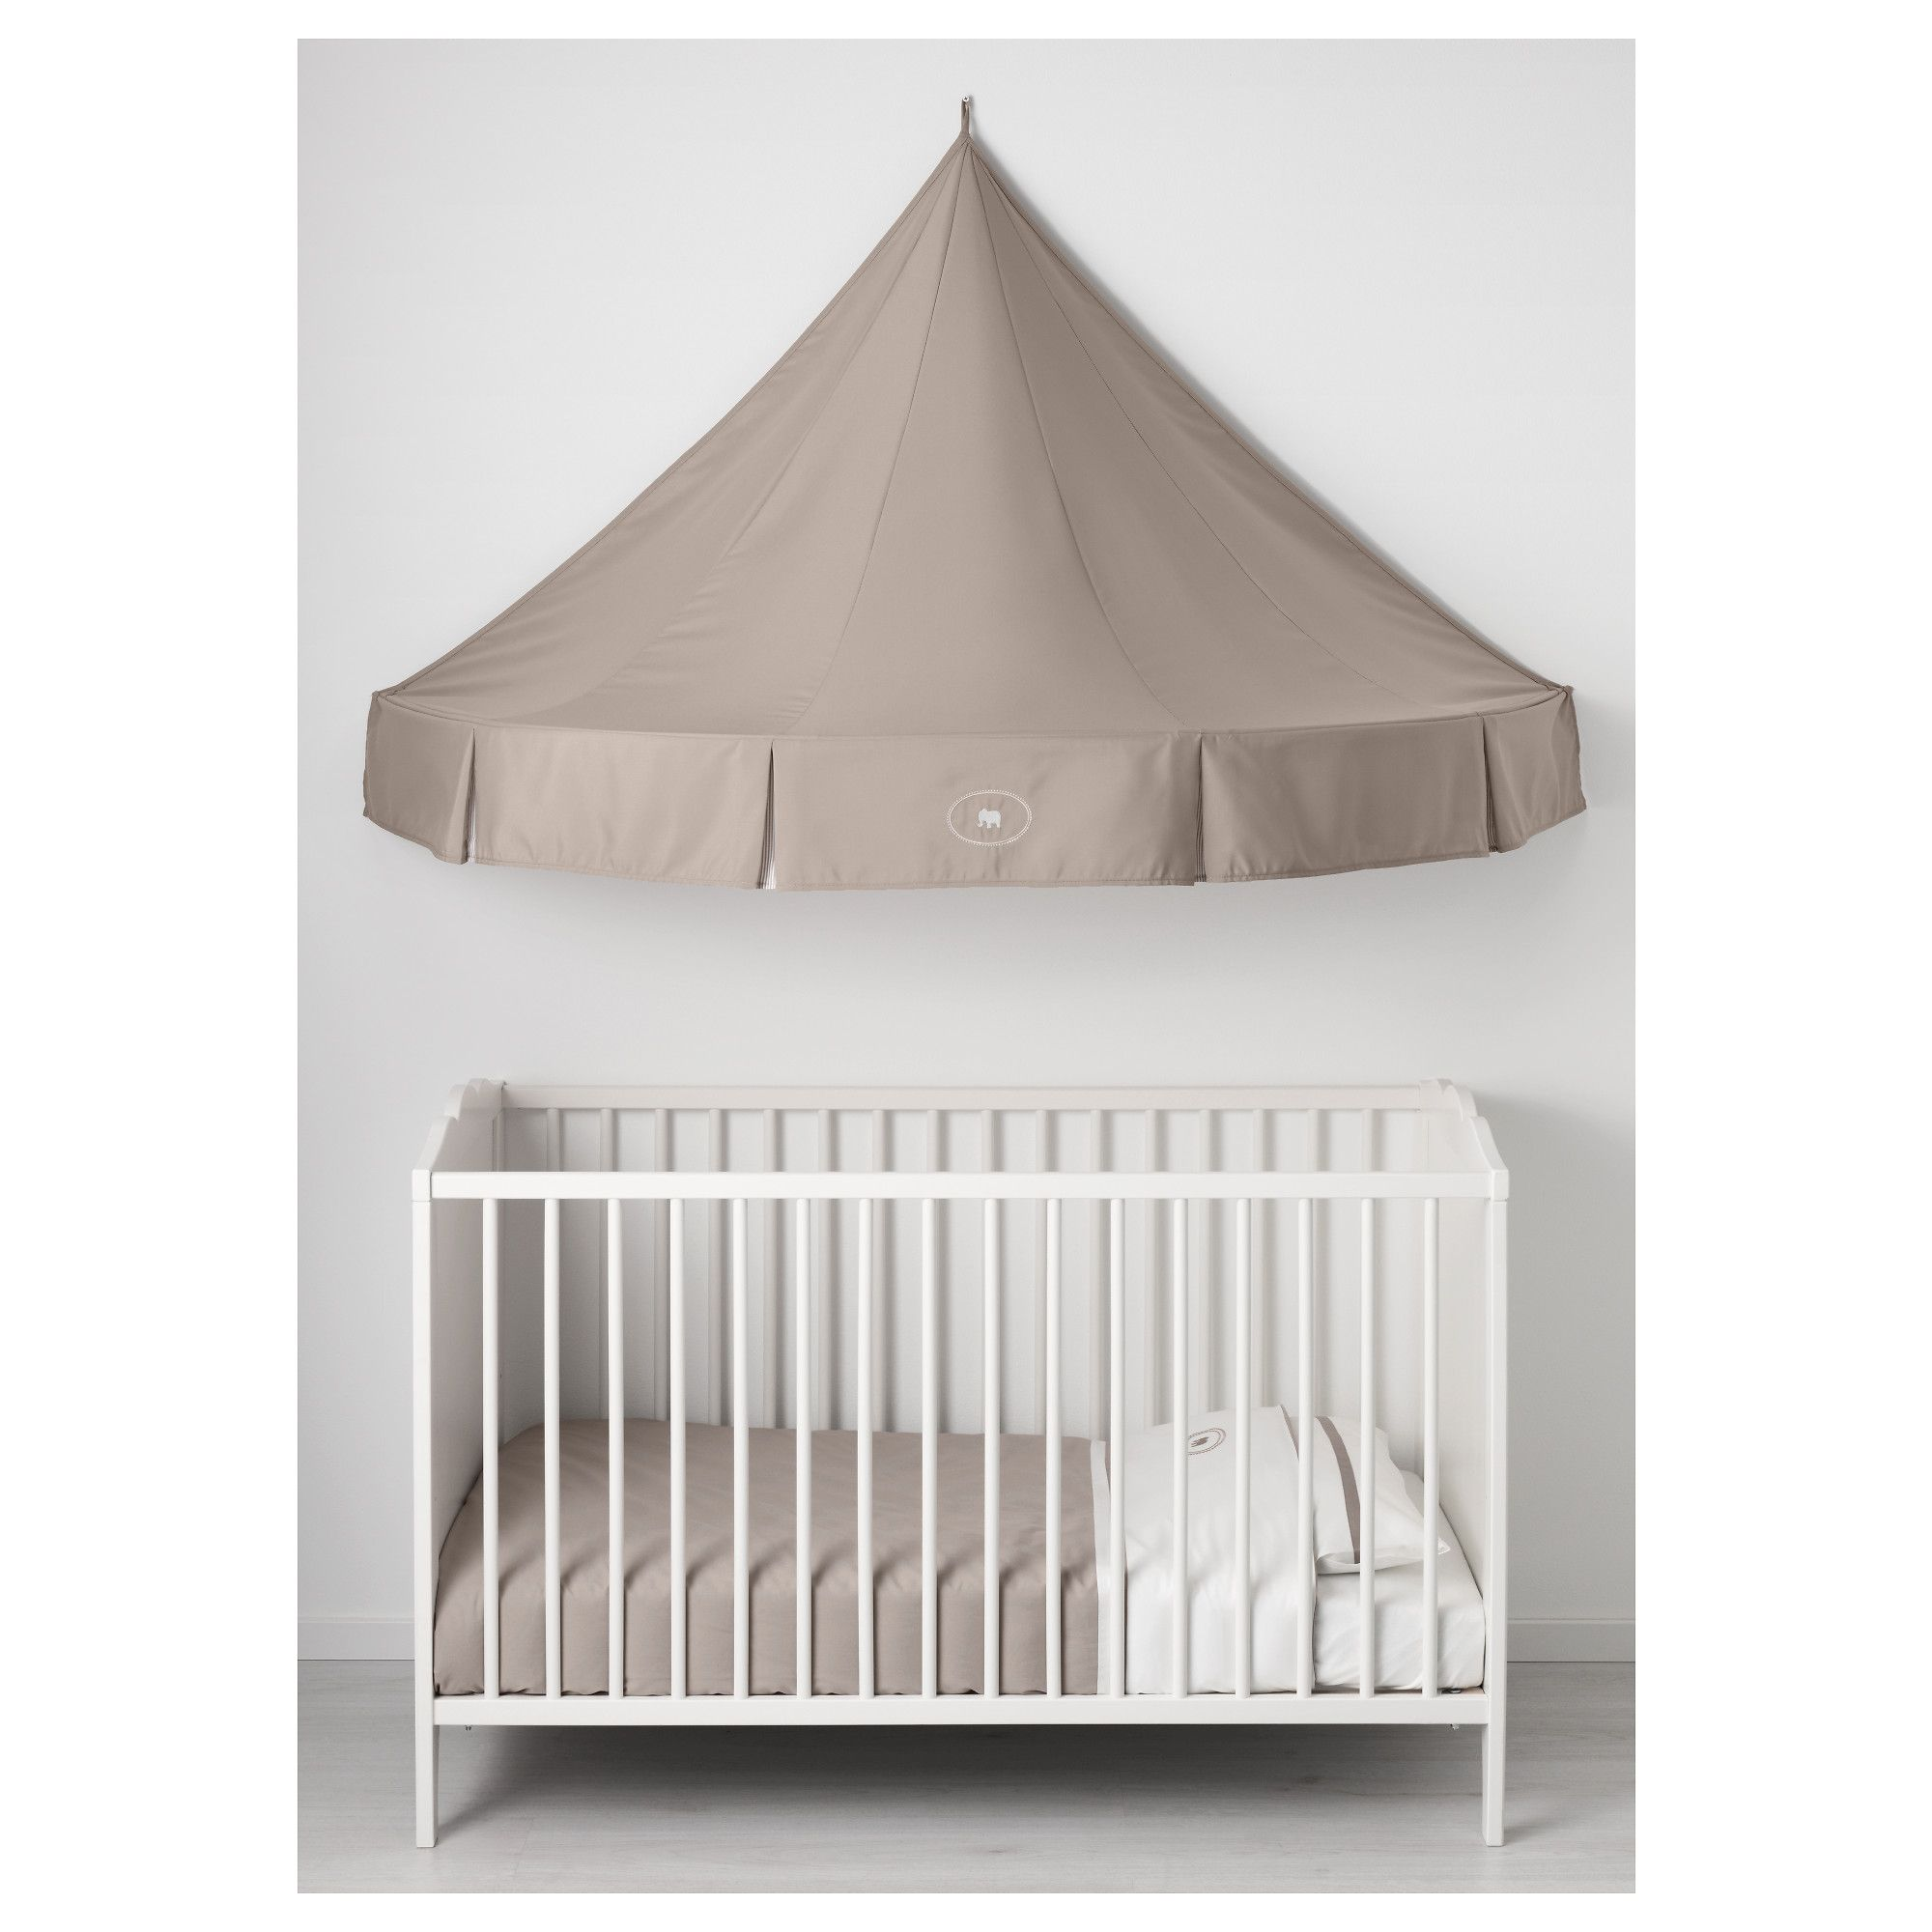 Letto Con Baldacchino Ikea.Children 39 S Bed Tents Amp Canopies Ikea Letto Con Tenda